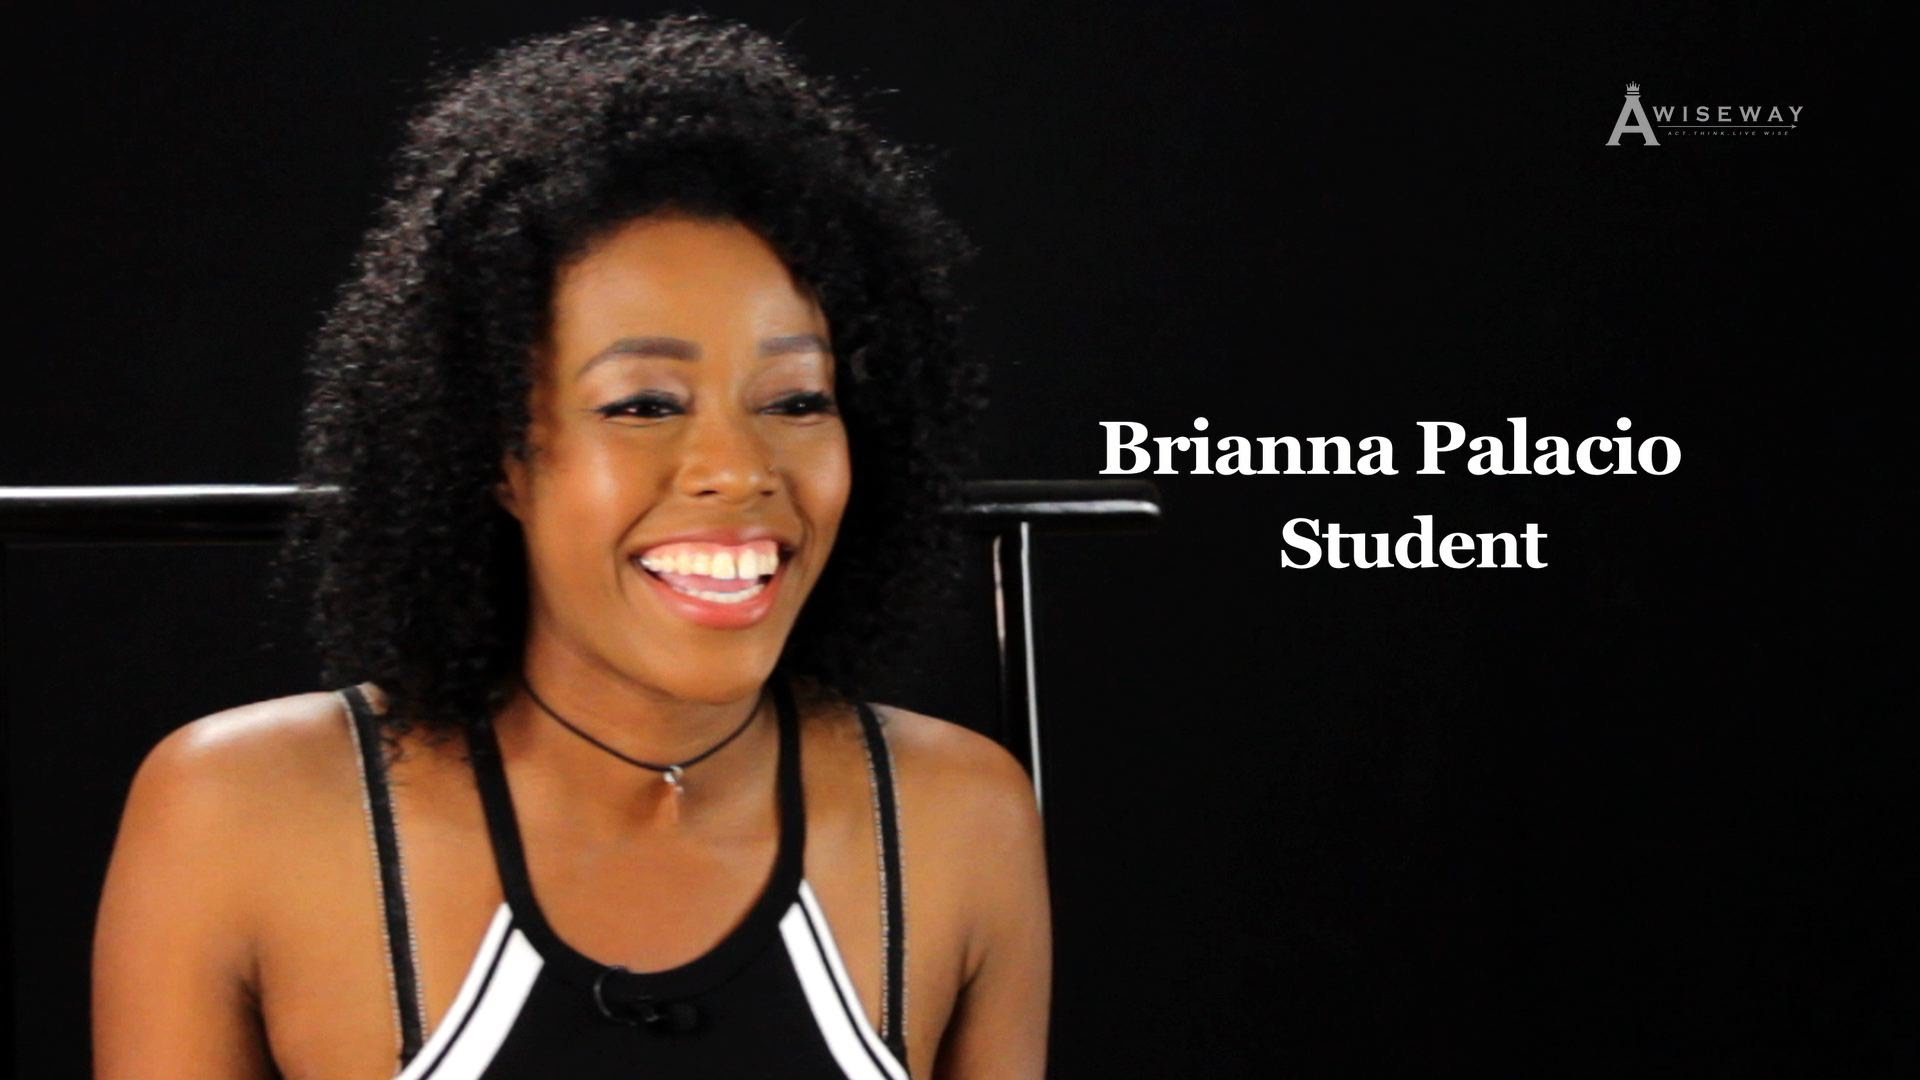 Student Discusses the Surprises in Transitioning from High School to College